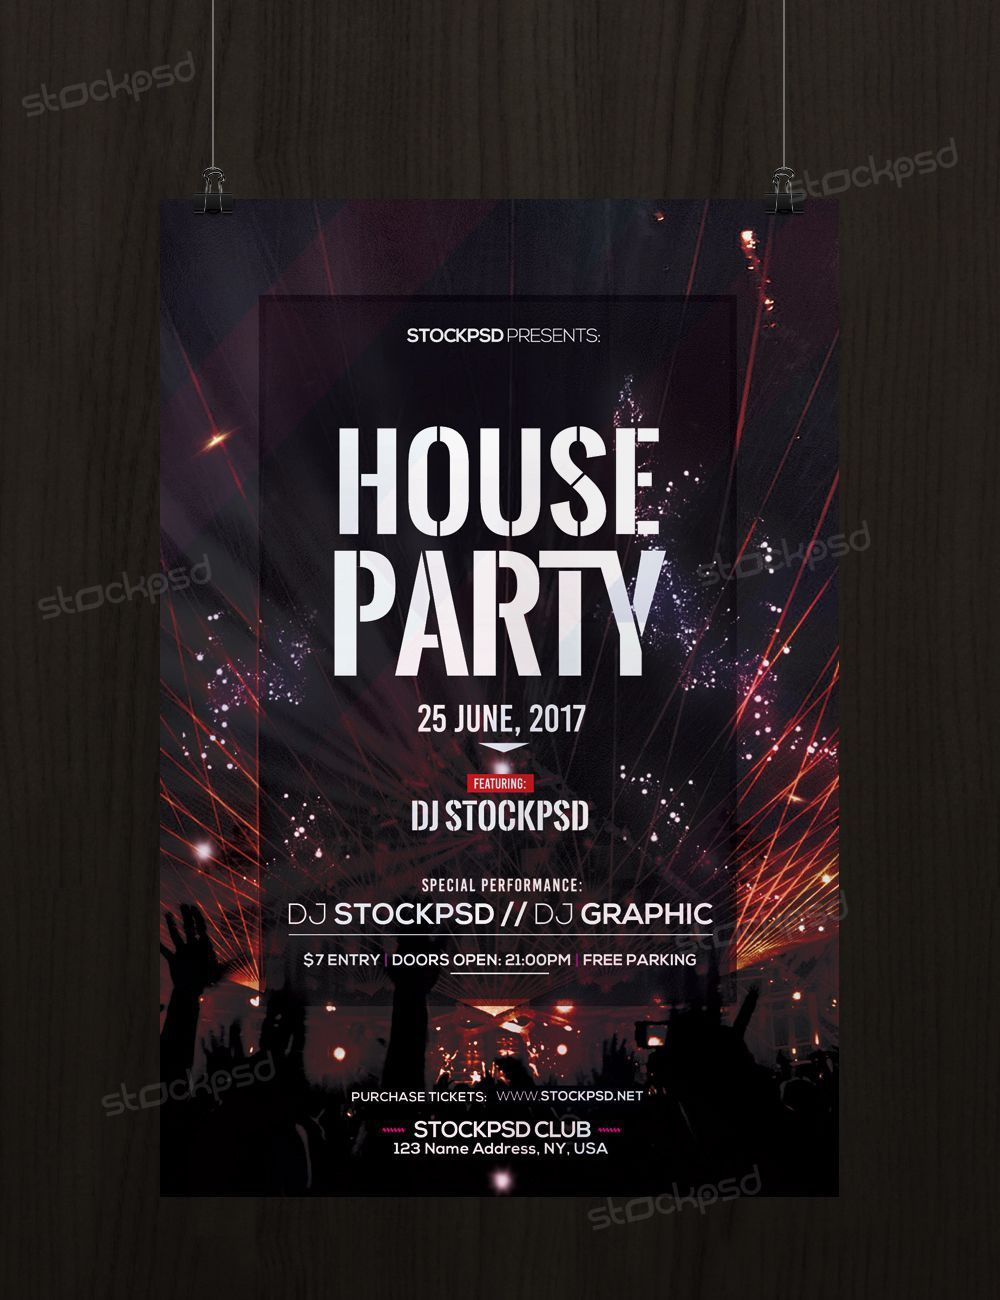 000 Magnificent Party Flyer Template Free Photoshop Idea  Birthday Psd Masquerade -Full